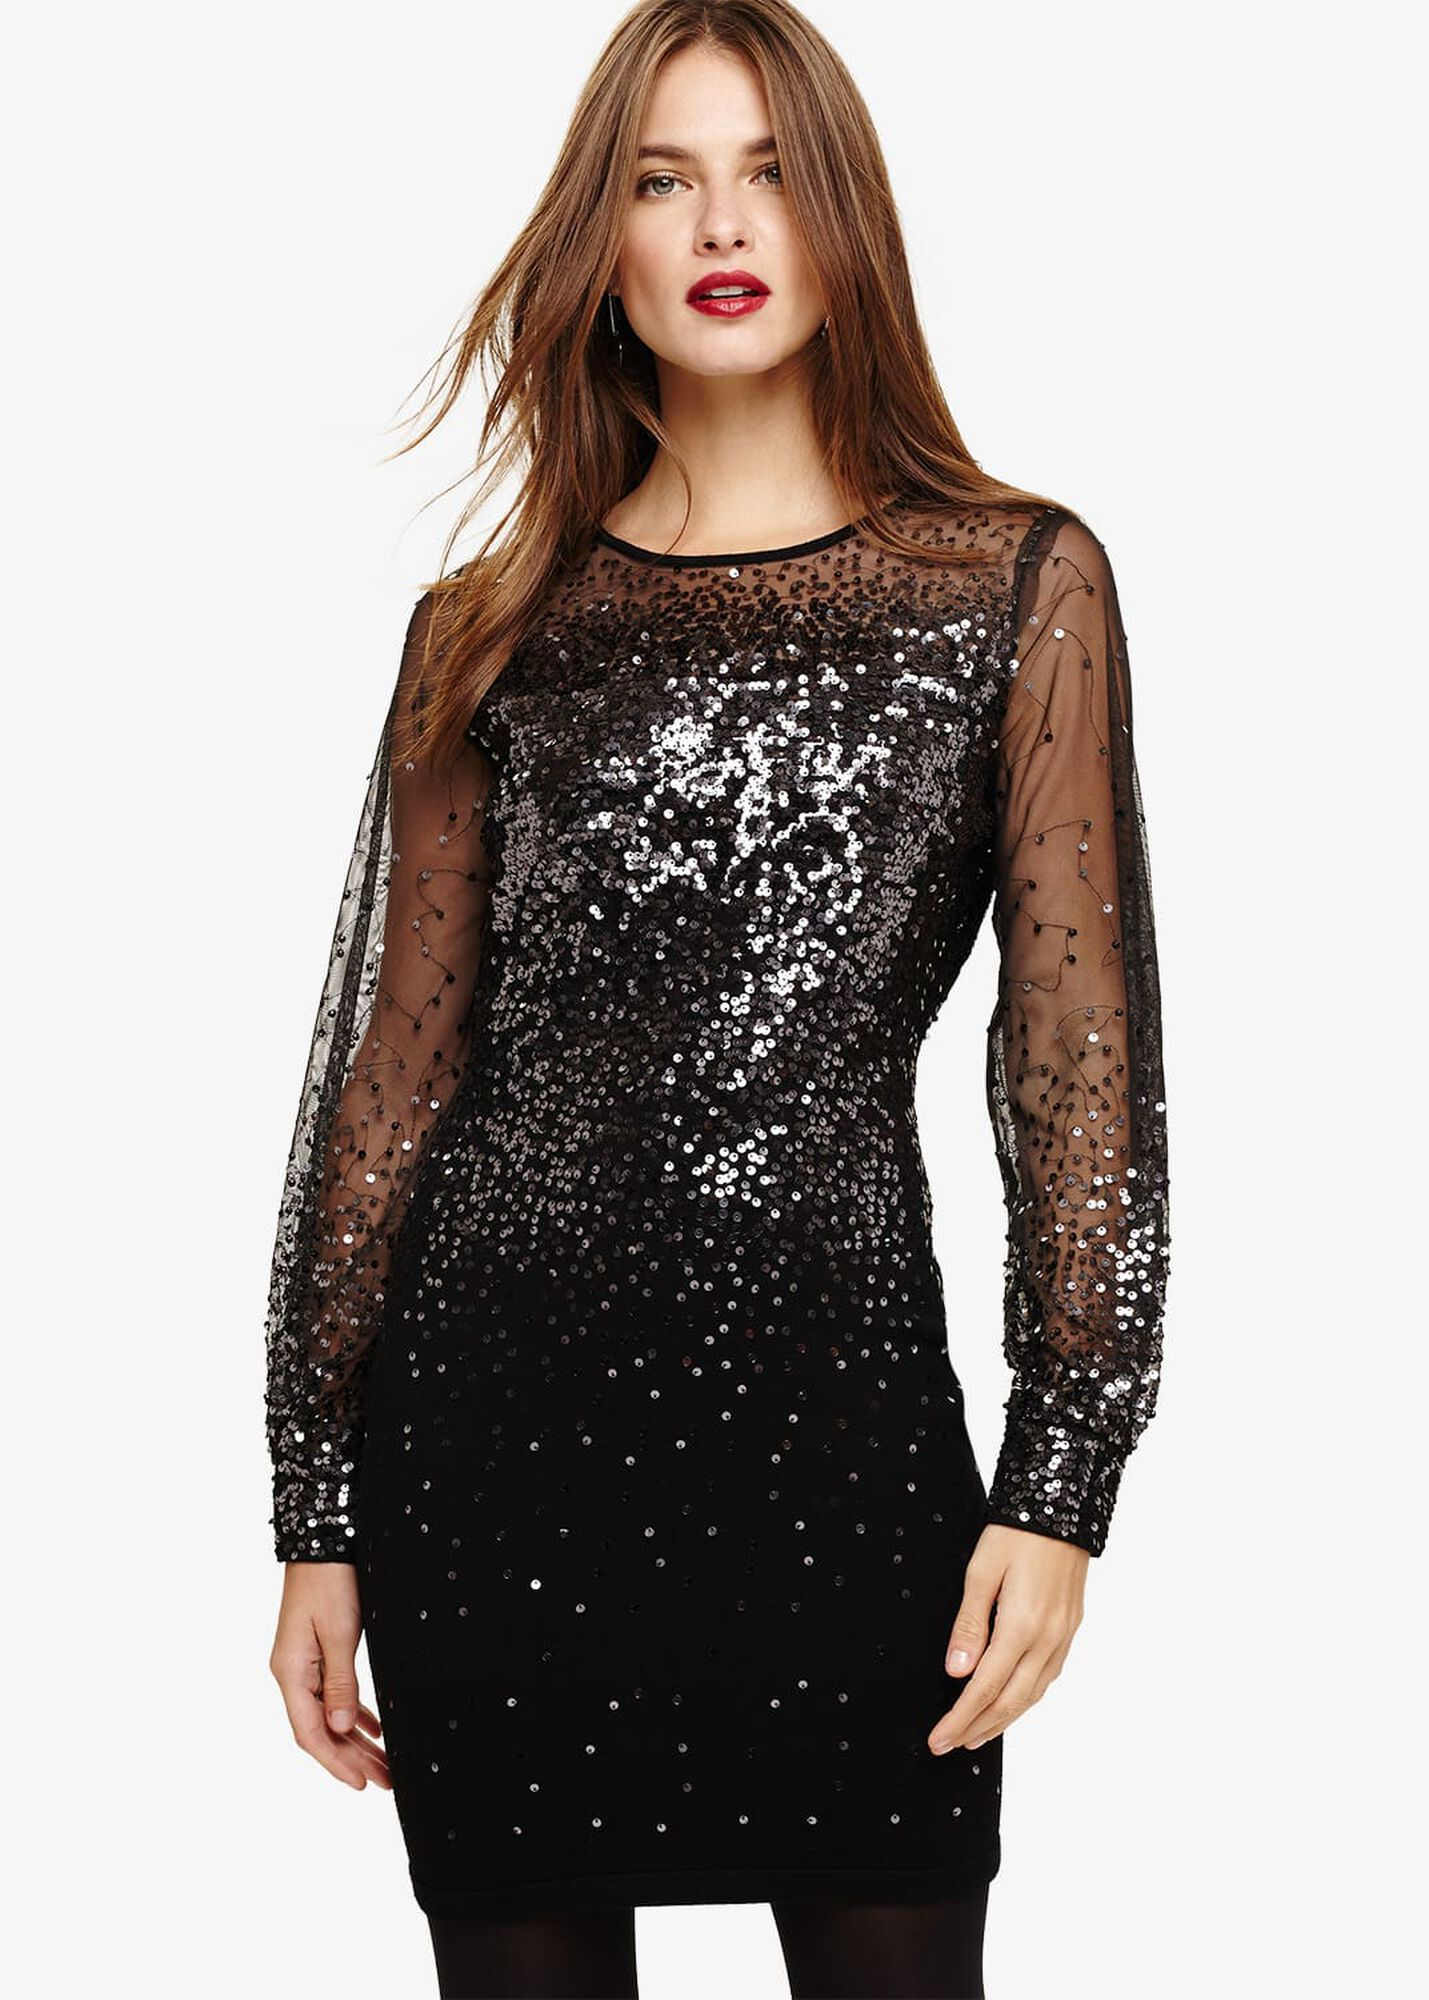 52c22af4 Matilda Balloon Sleeve Sequin Dress | Phase Eight | Phase Eight